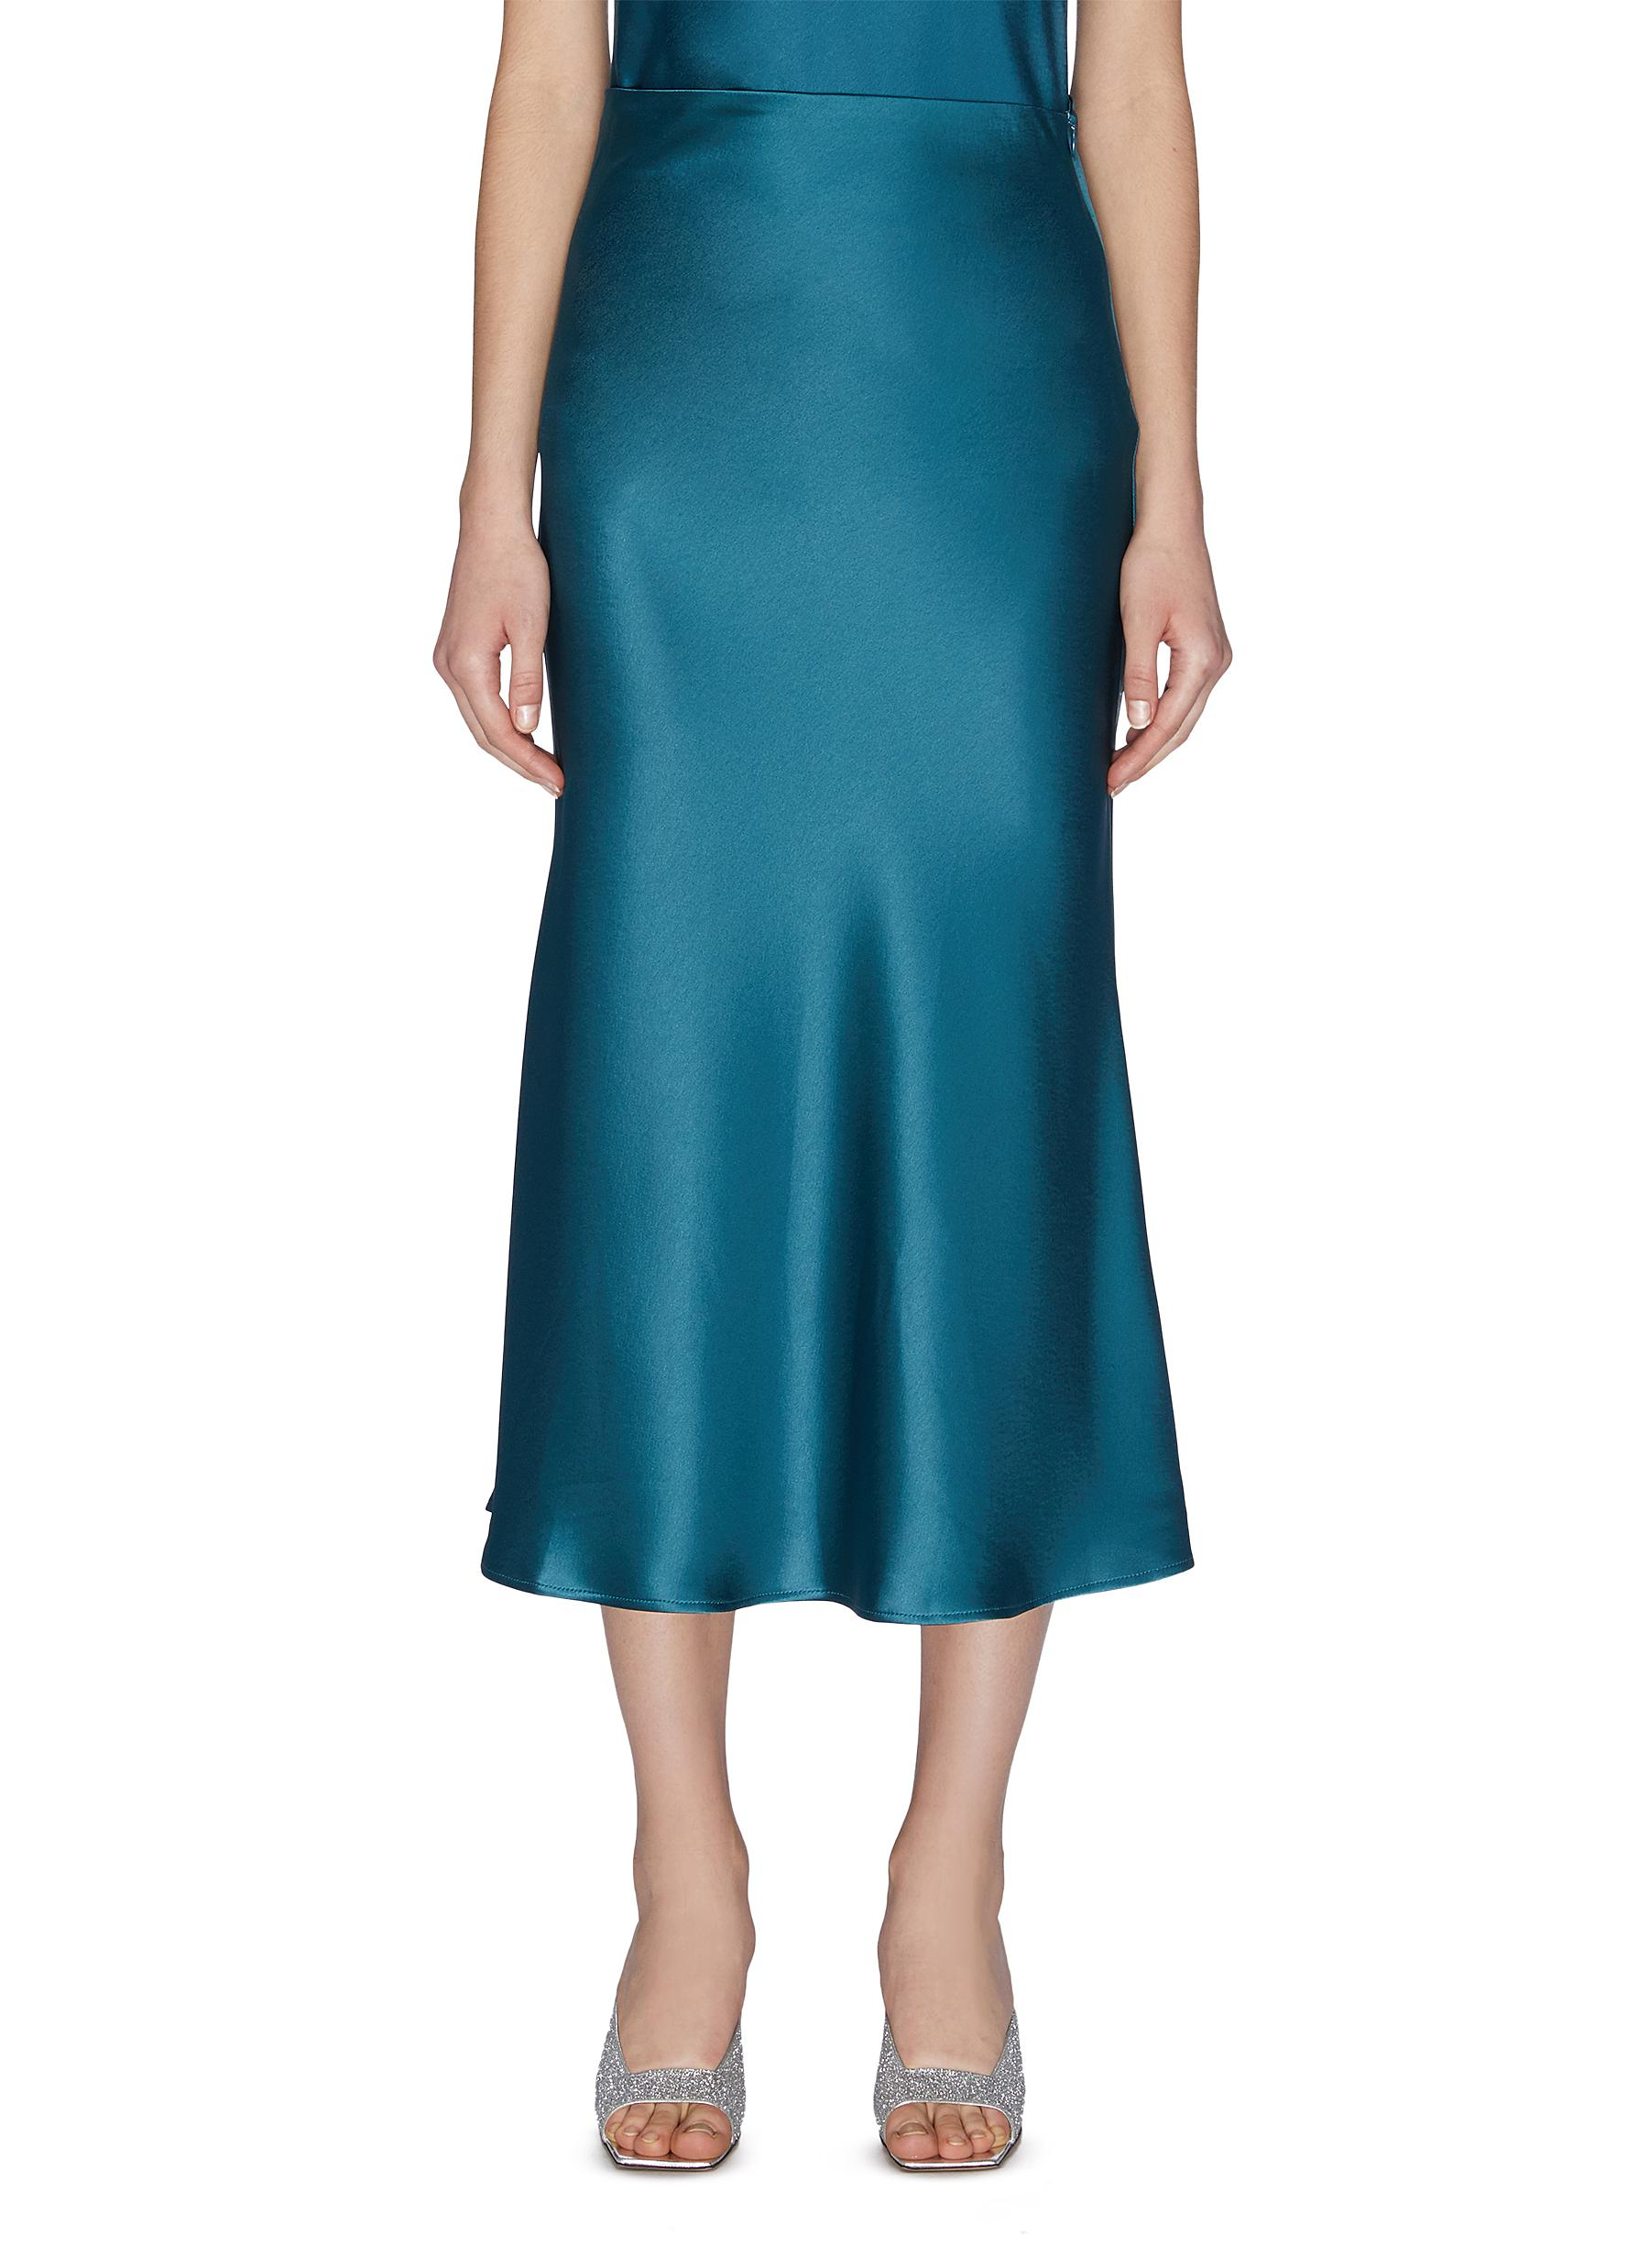 Buy Galvan London Skirts 'Valetta' satin midi skirt